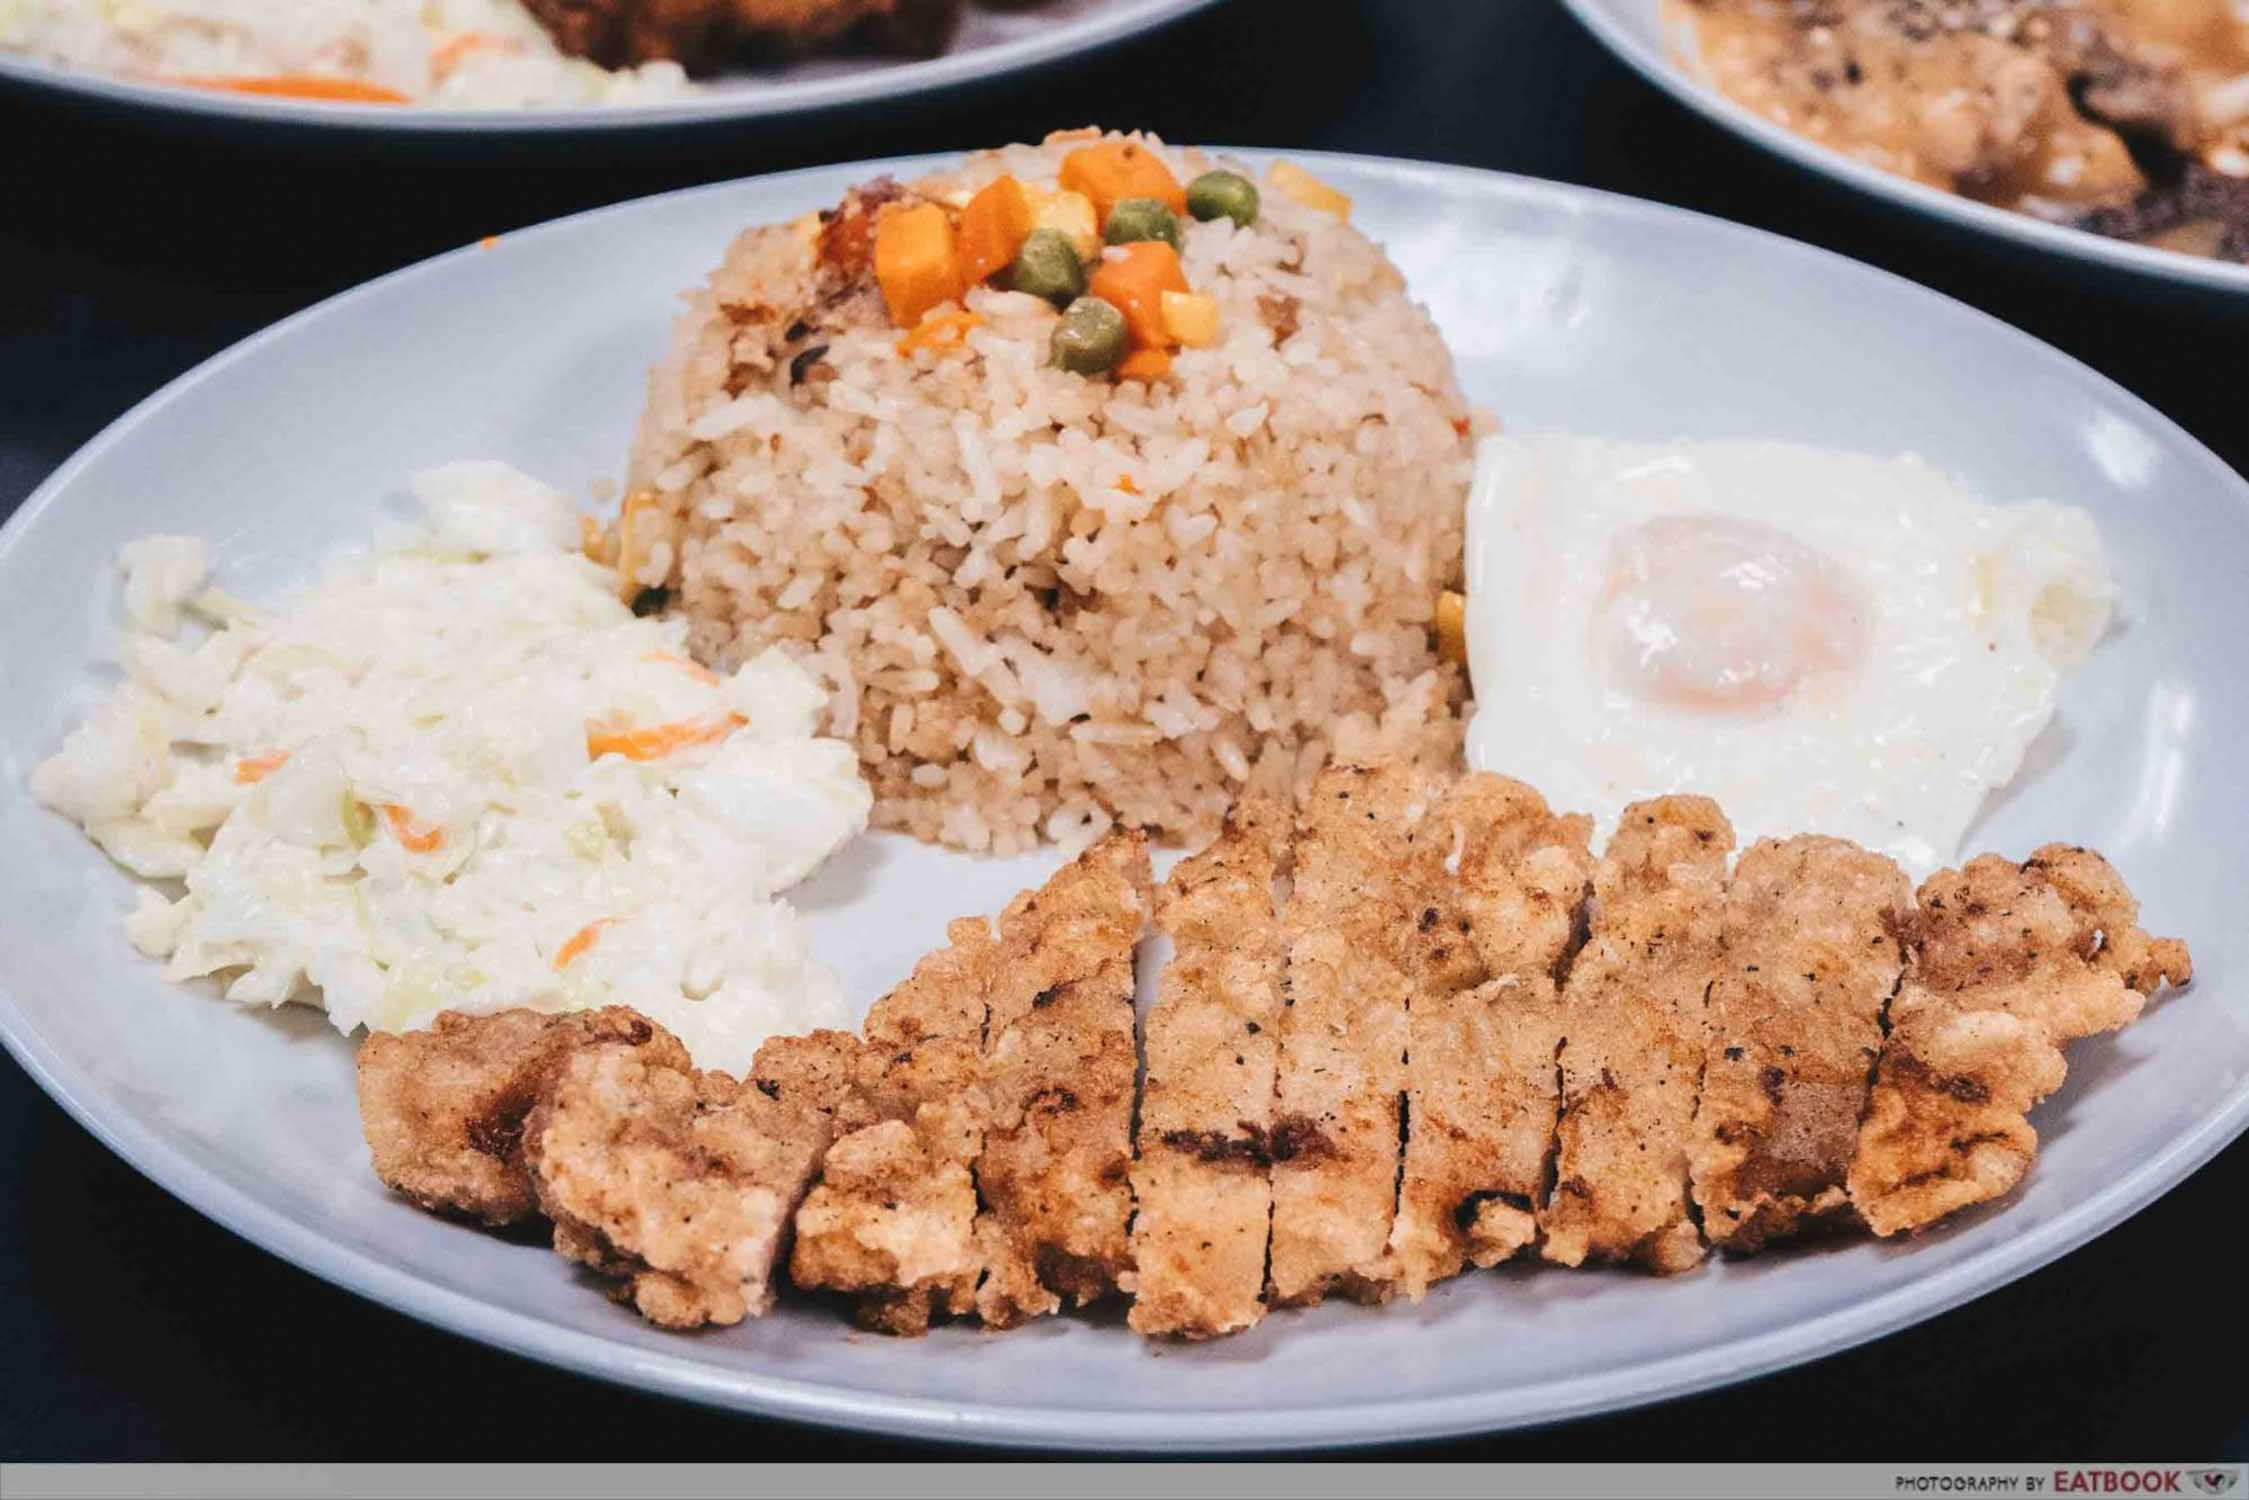 Supreme Pork Chop Rice - Pork Chop Fried Rice